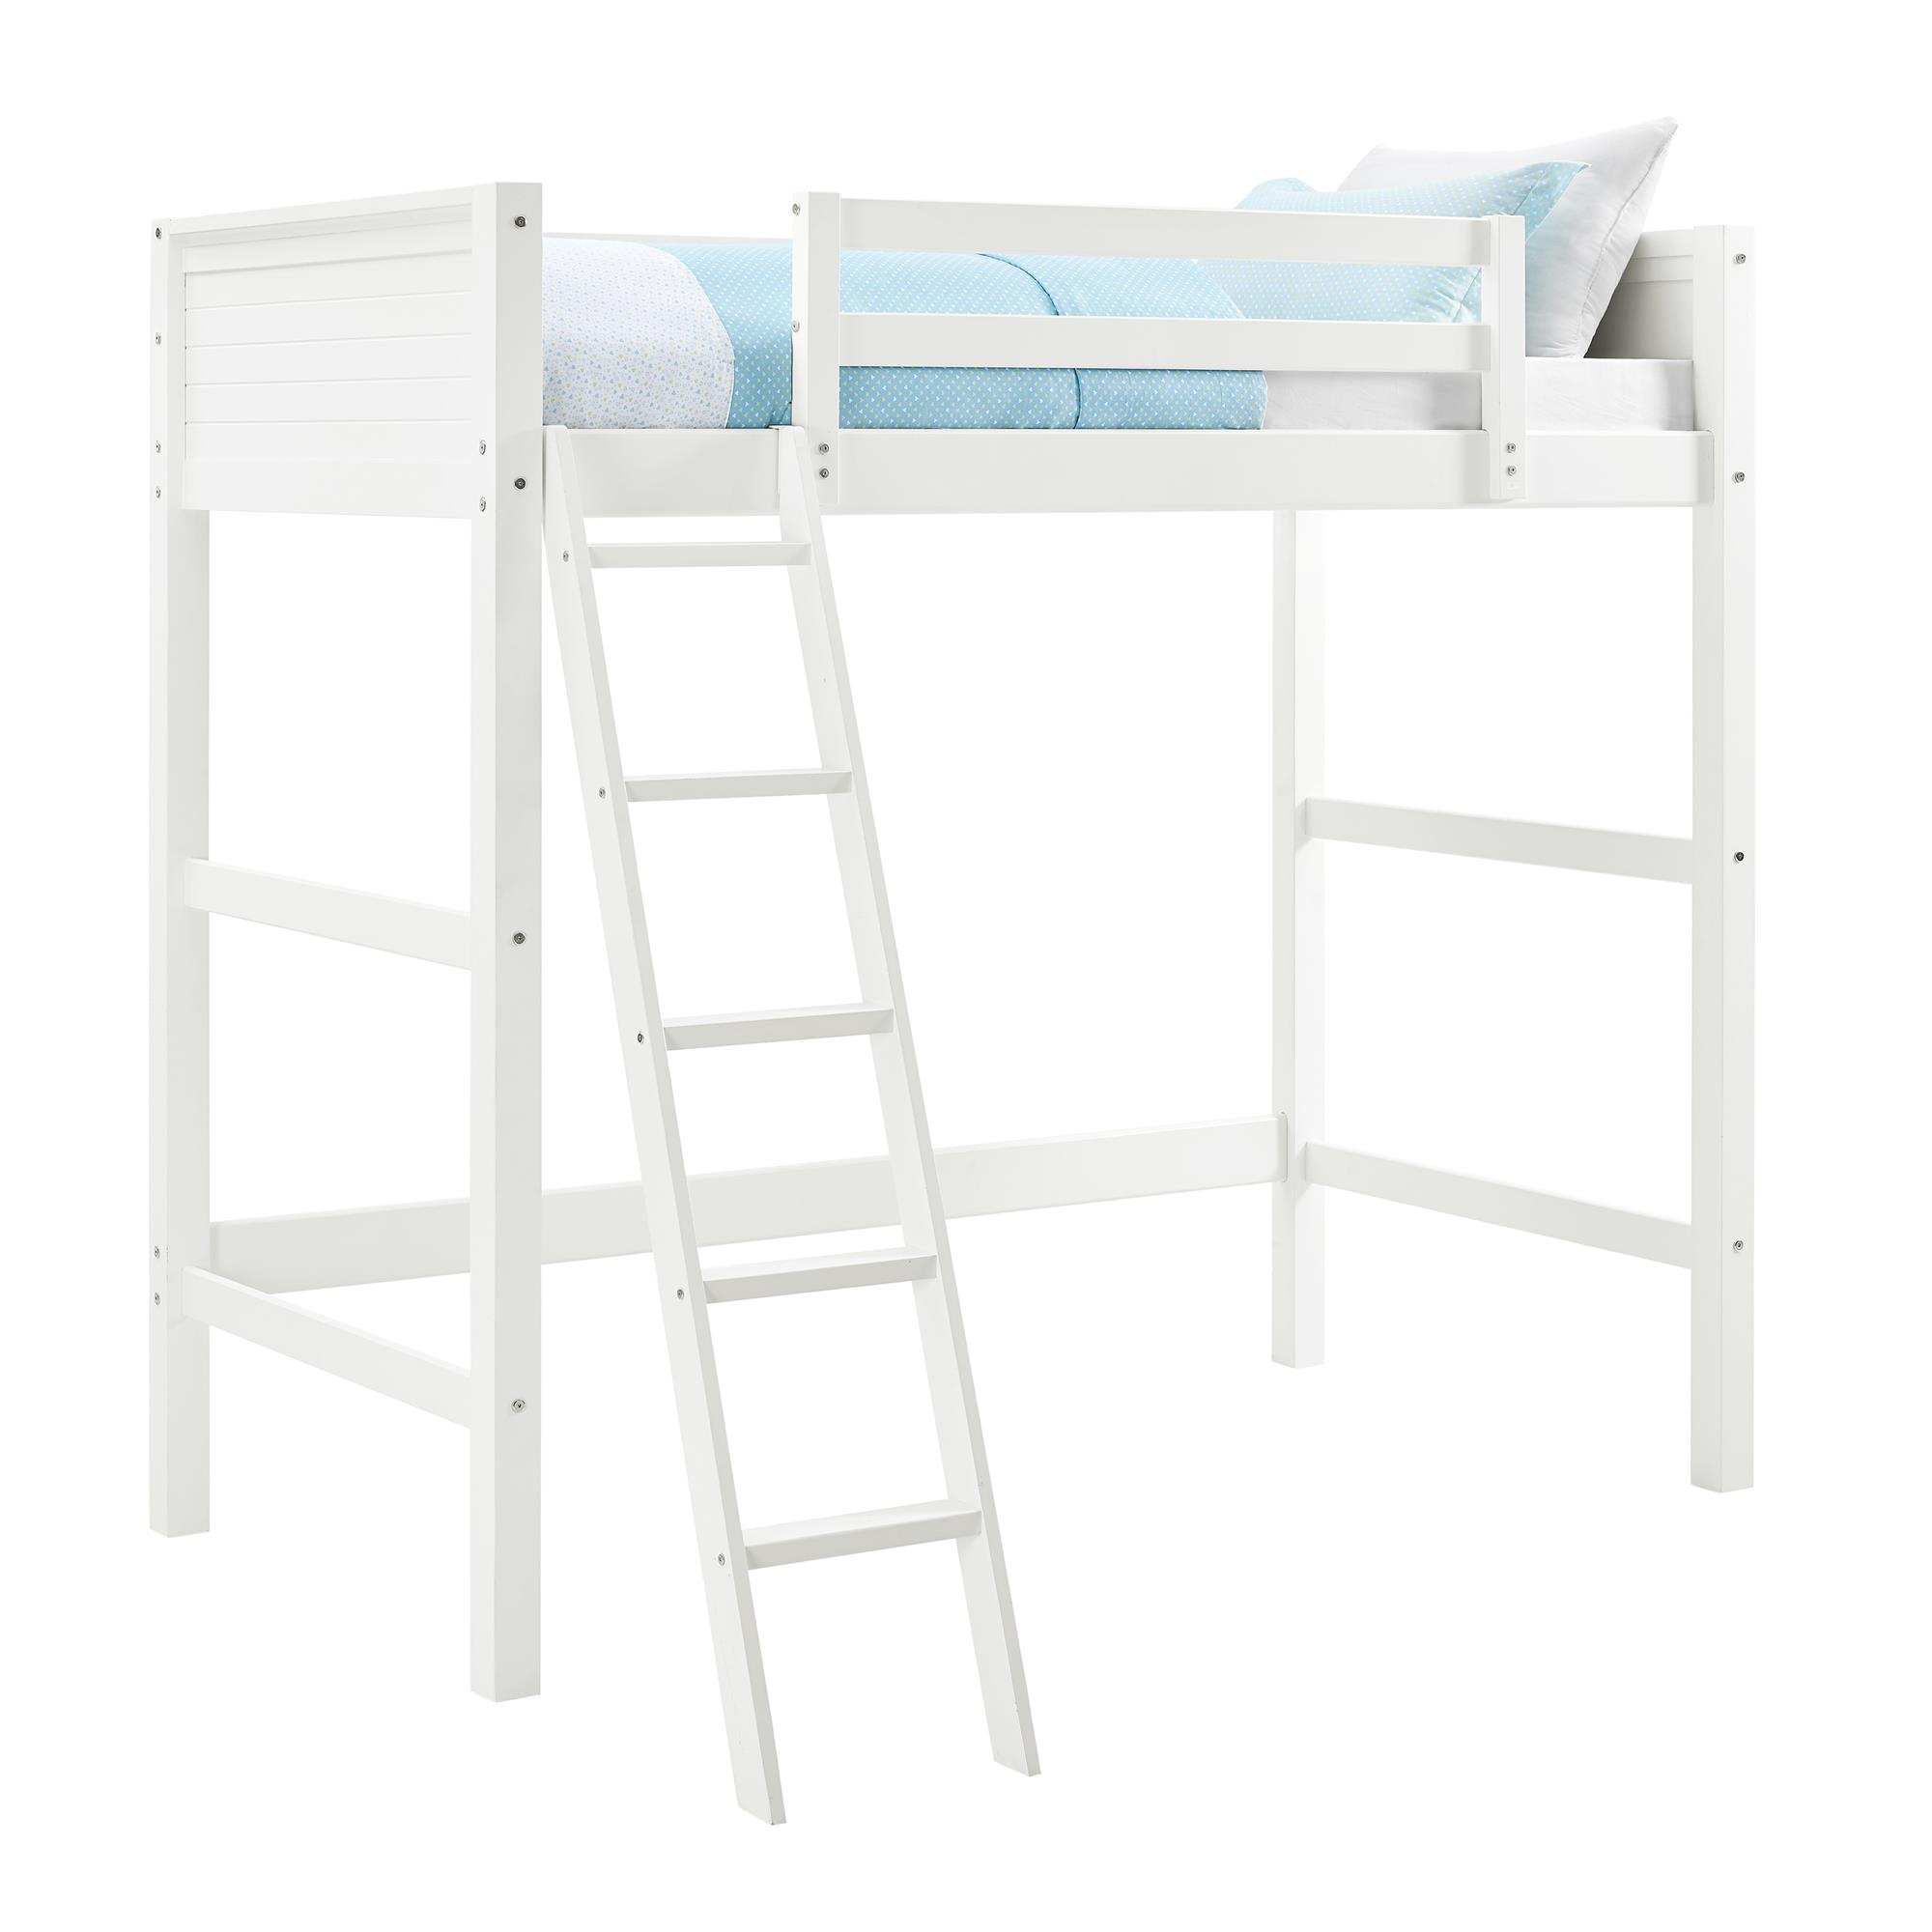 Your Zone Twin Wood Loft Bed, Multiple Colors   Walmart.com